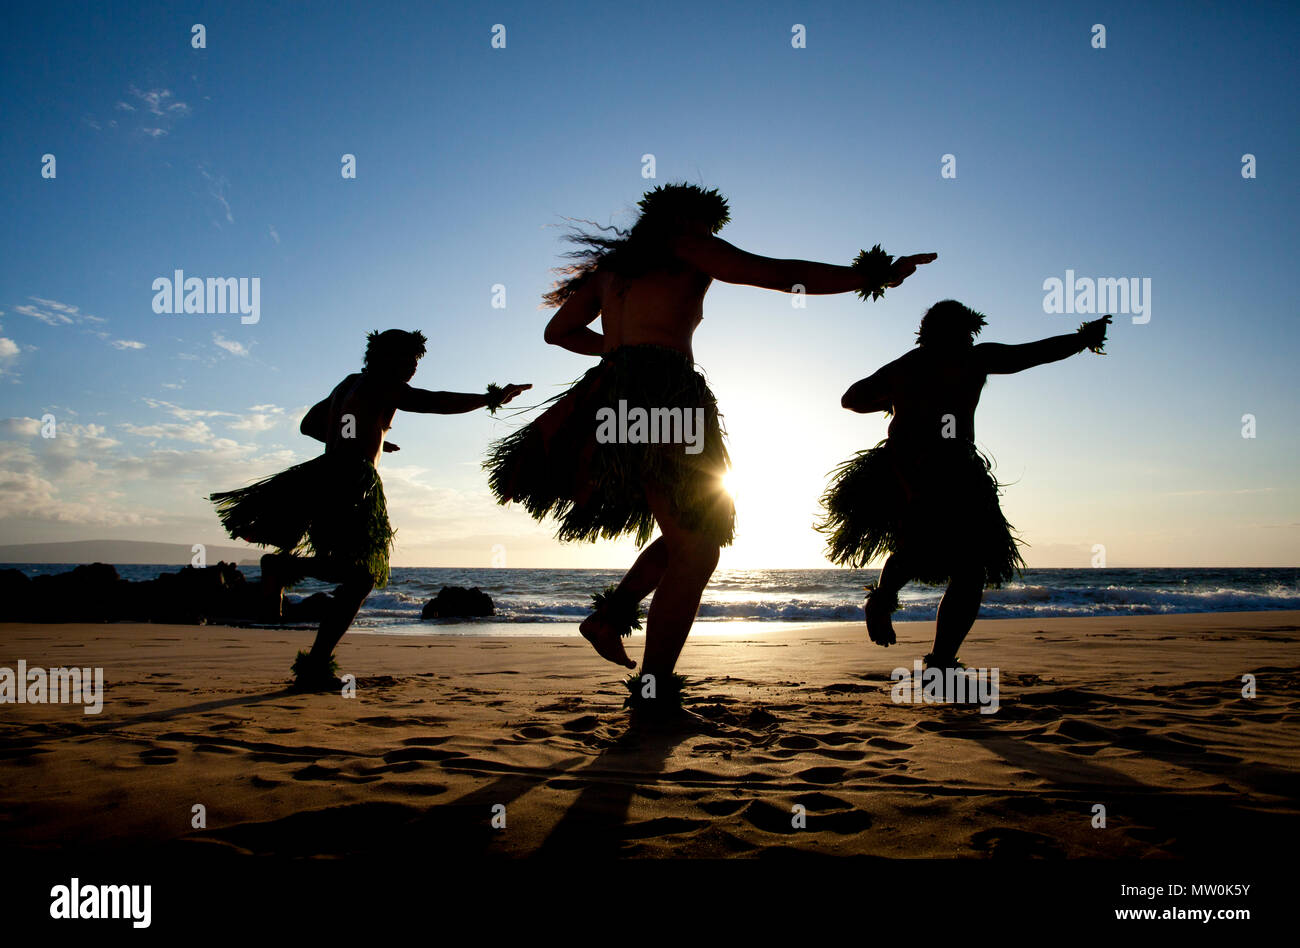 Three male hula dancers at sunset at Wailea, Maui, Hawaii. - Stock Image